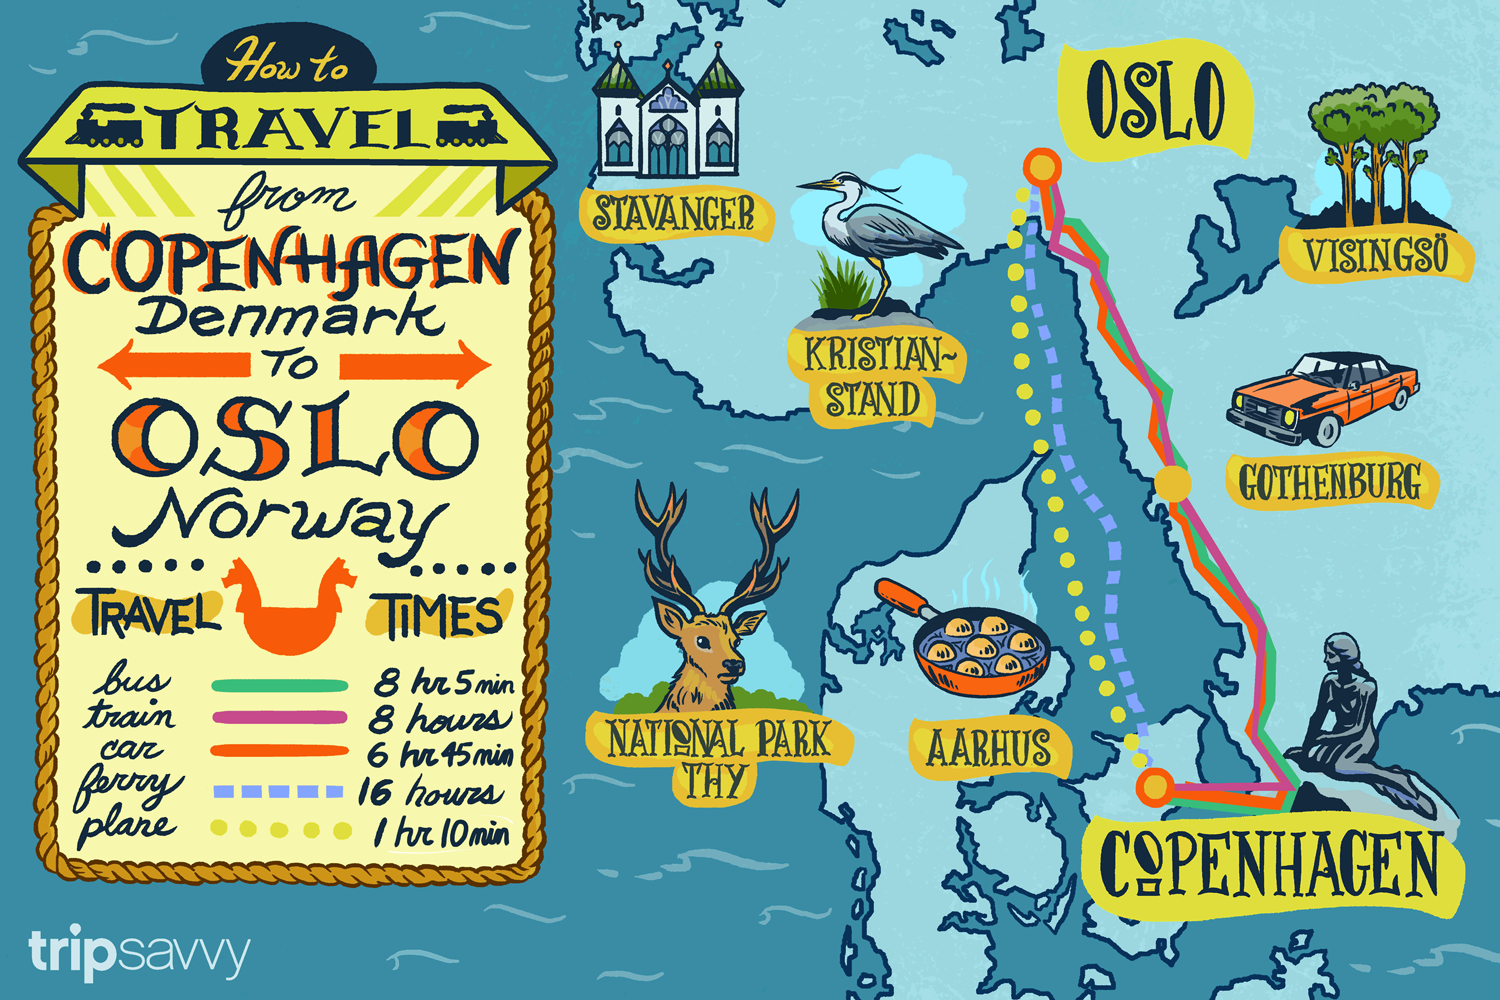 Travel Time between Oslo and Copenhagen: Bus 8 hours 5 minutes, Train 8 hours, Car 6 hours 45 minutes, Ferry 16 hours, Plane 1 hour 10 minutes